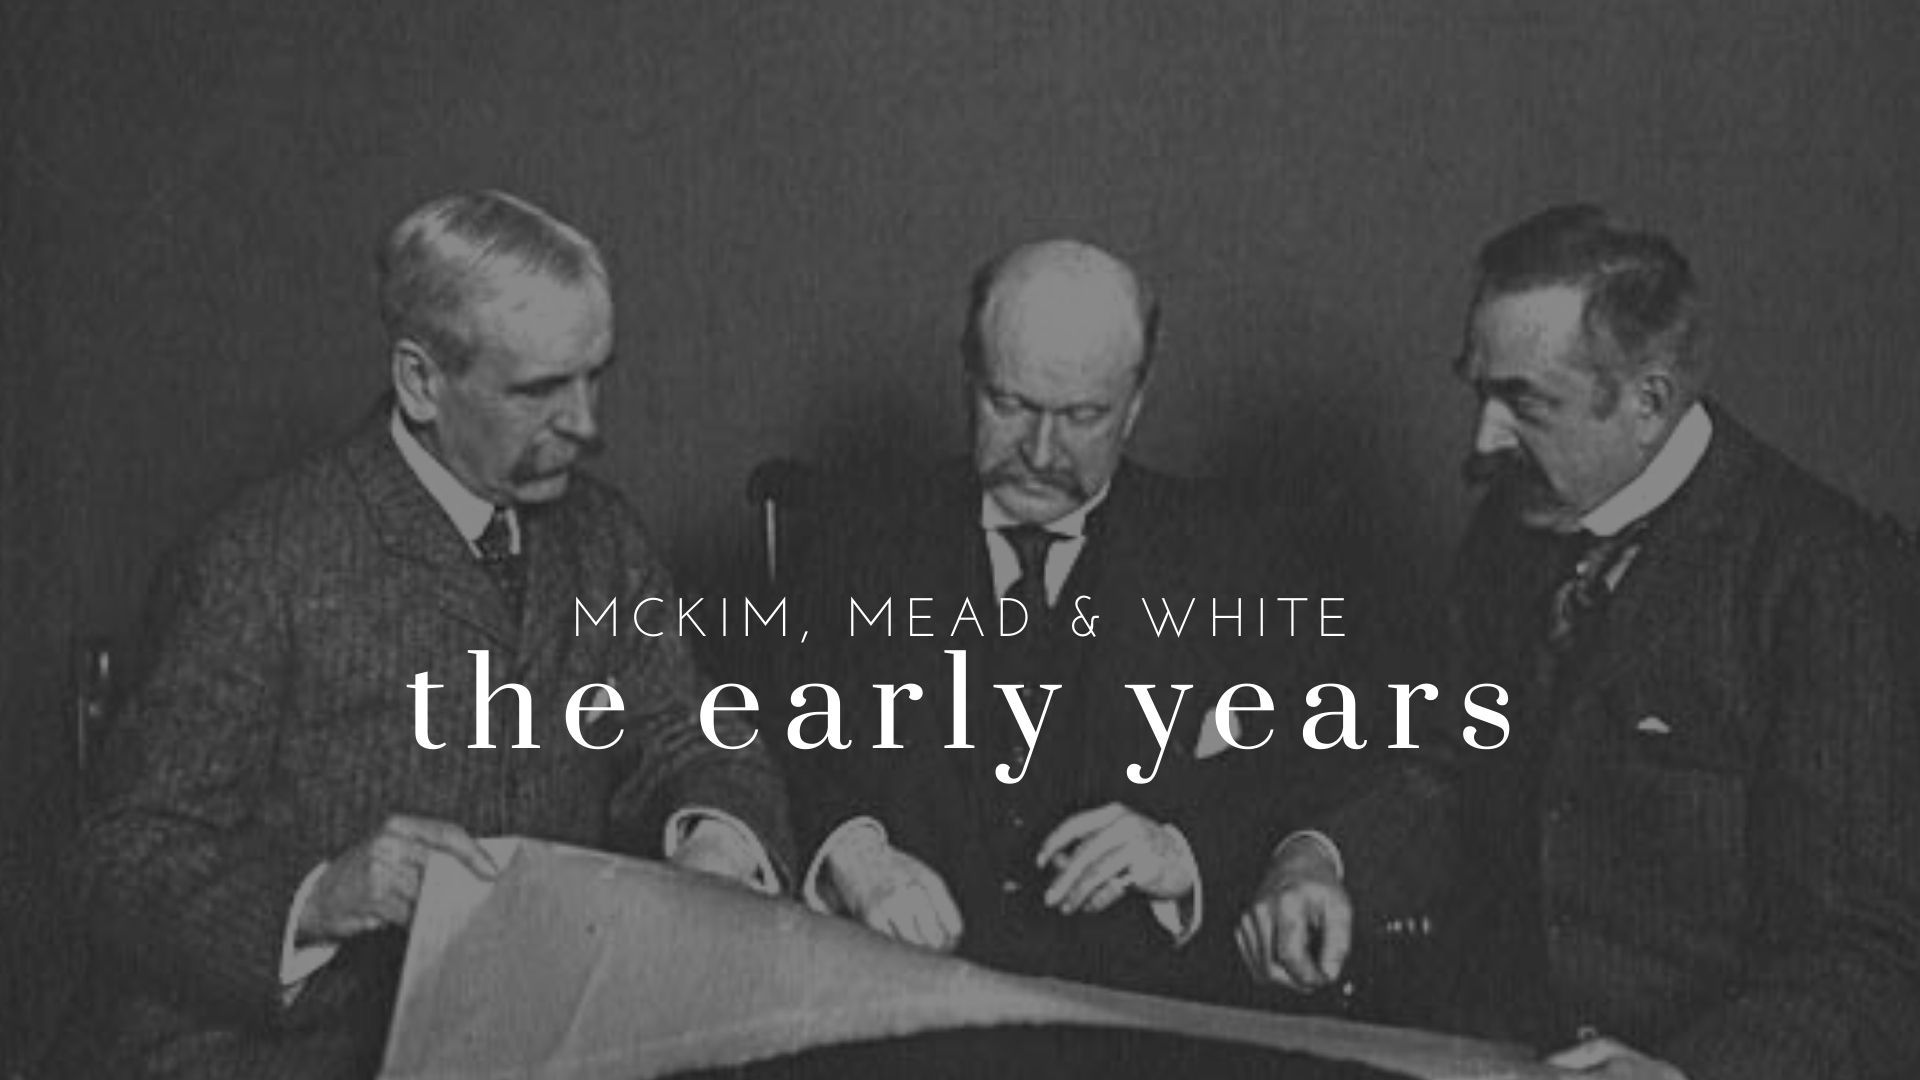 McKim, Mead & White: The Early Years